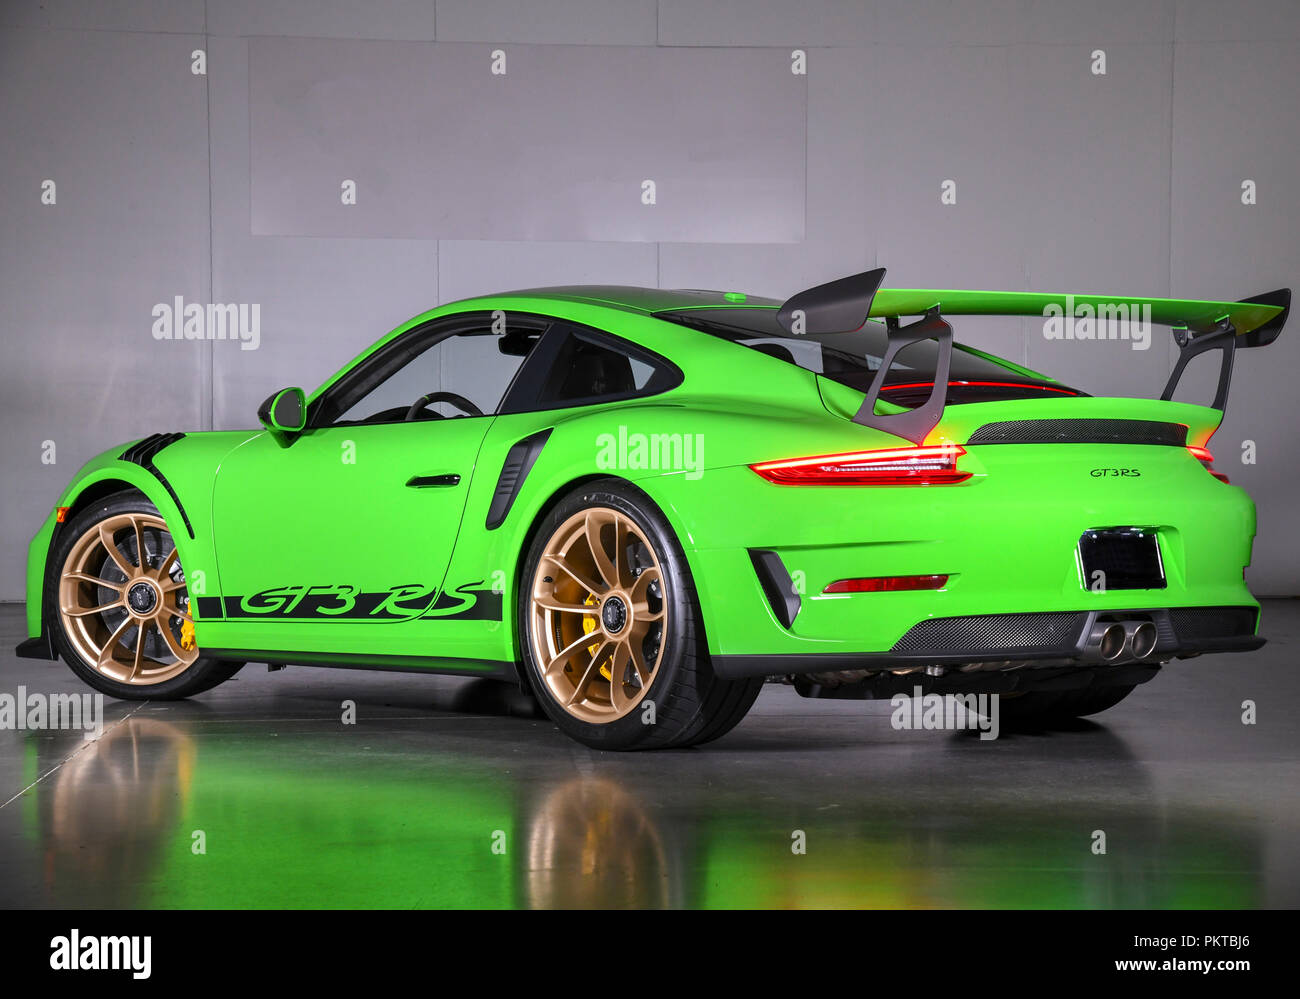 sept 15 2018 2019 porsche 911 gt3 rs ist mit einem 4 0. Black Bedroom Furniture Sets. Home Design Ideas